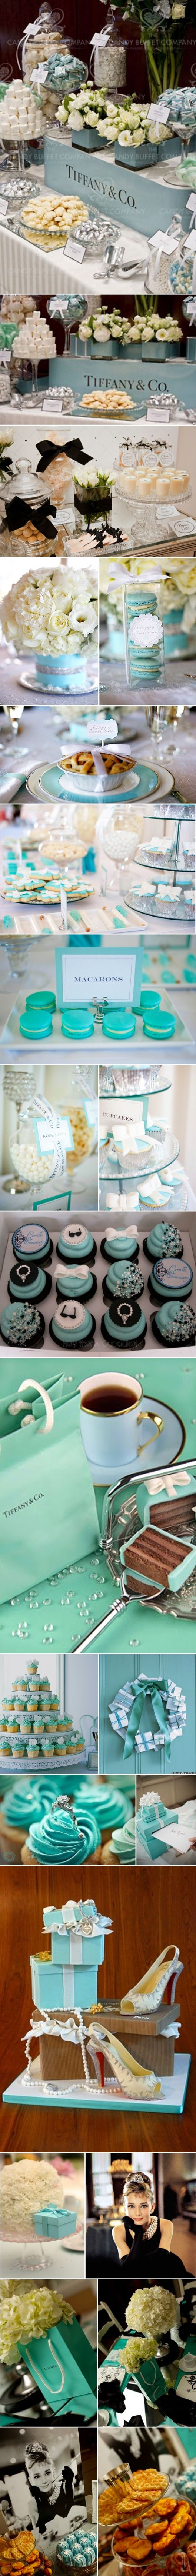 Tiffany and Co. theme